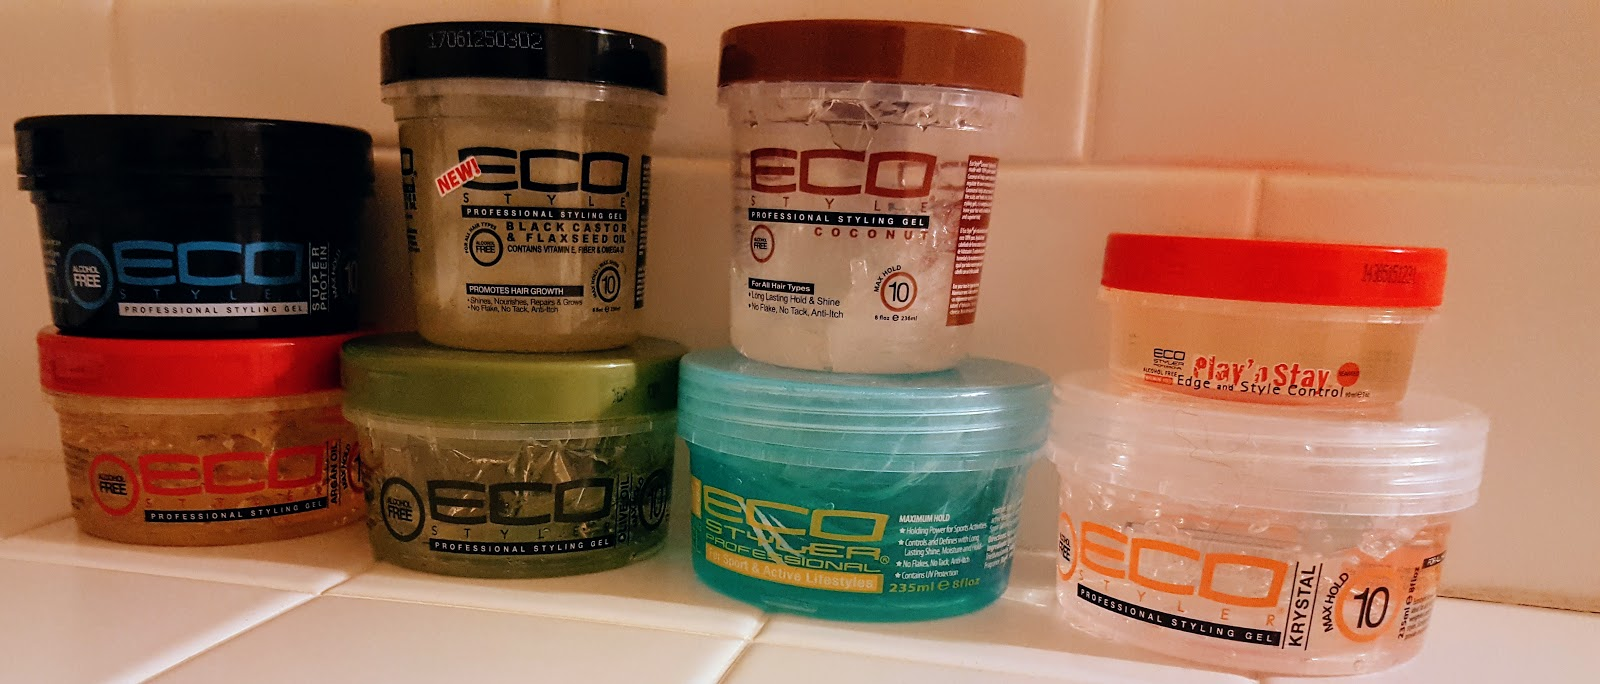 Is Eco Gel Good For Natural Hair